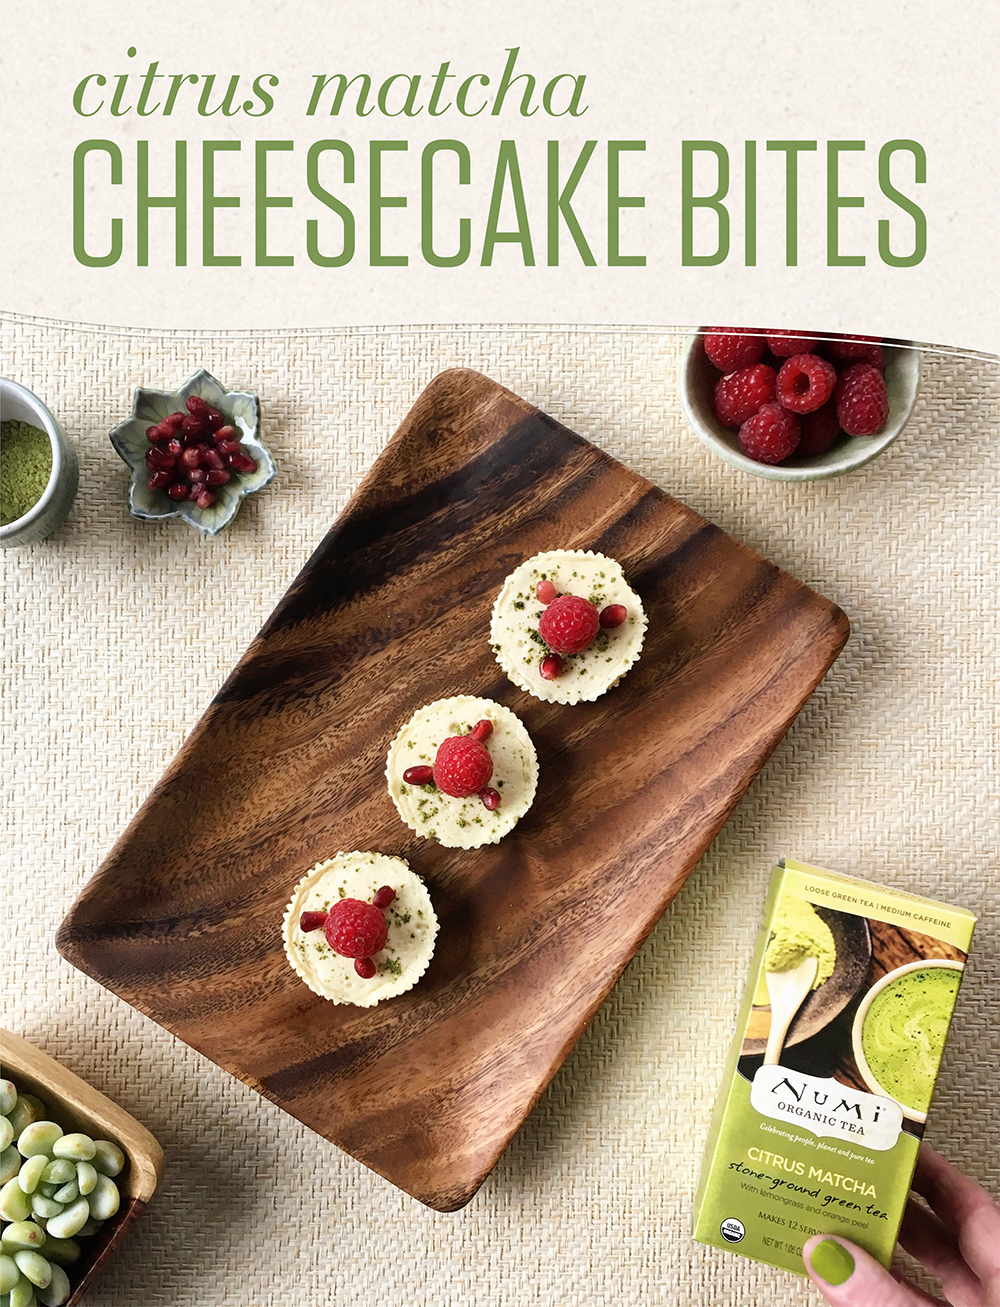 Matcha fans will enjoy the bite-sized deliciousness of these miniature gluten-free cheesecakes.